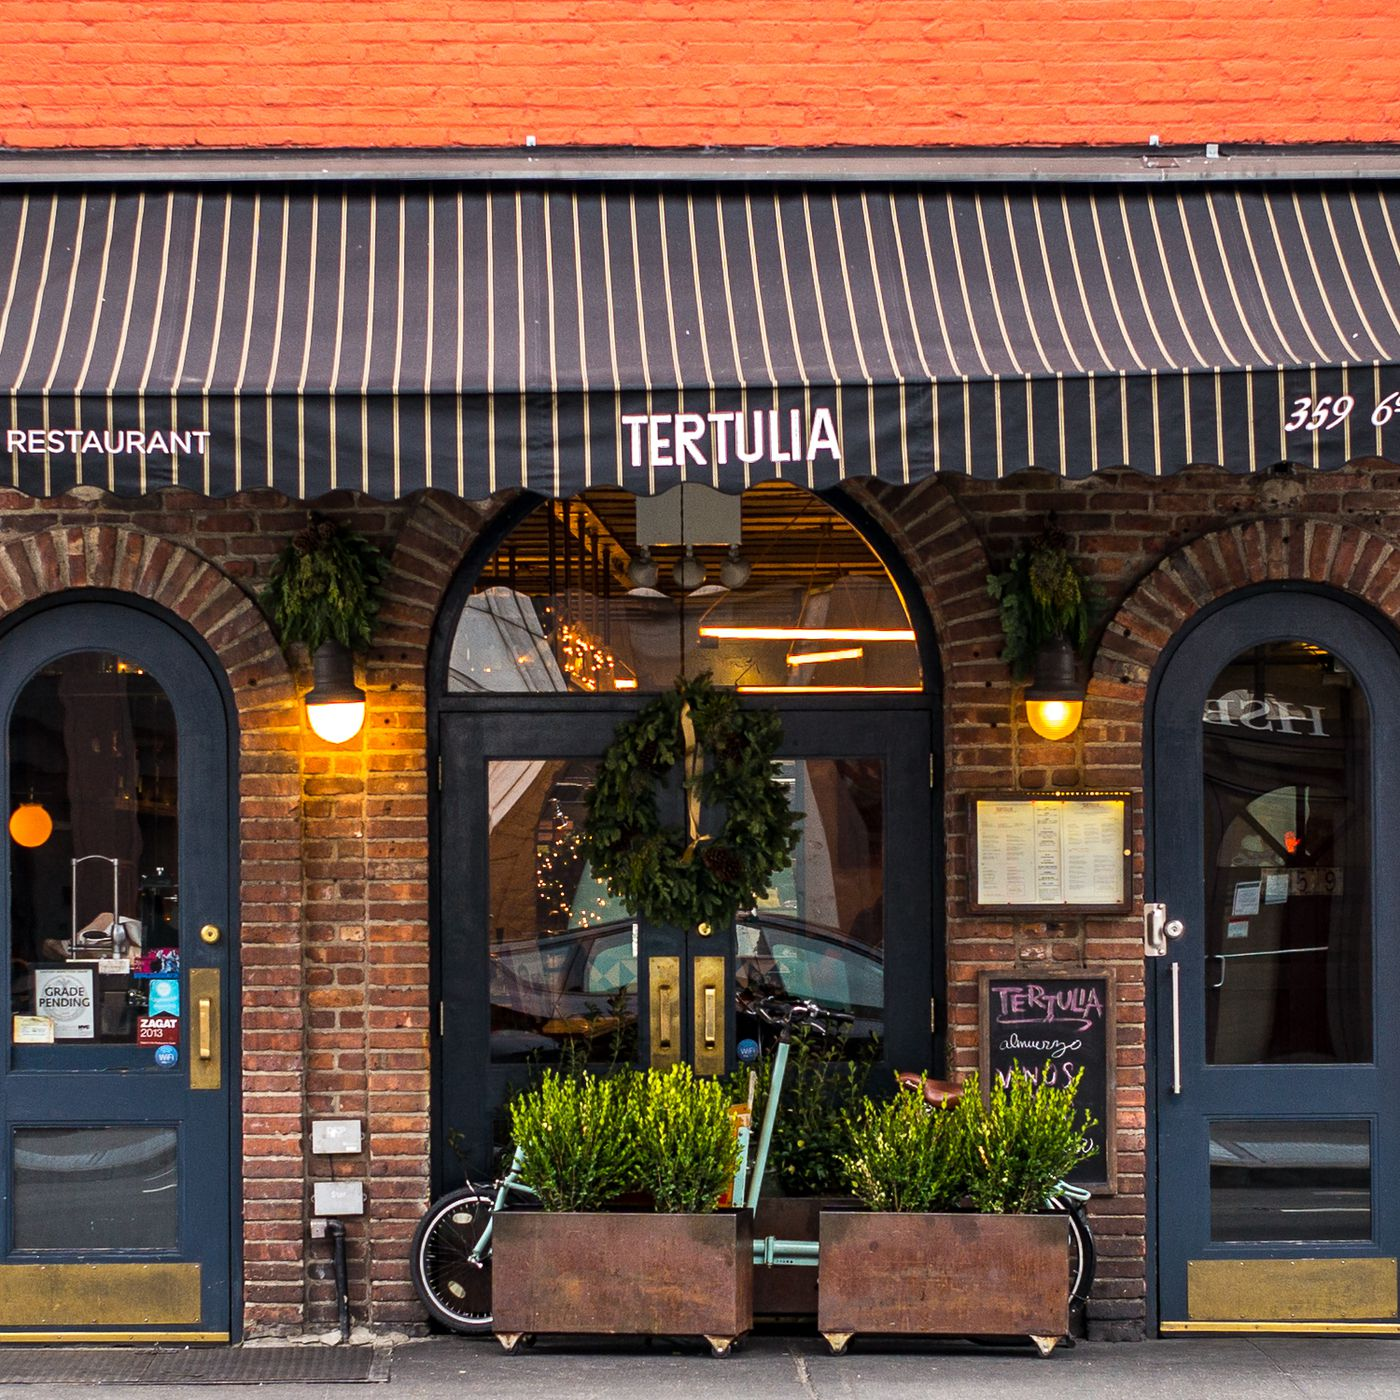 Seamus Mullen S Tertulia To Close In West Village This Weekend Eater Ny